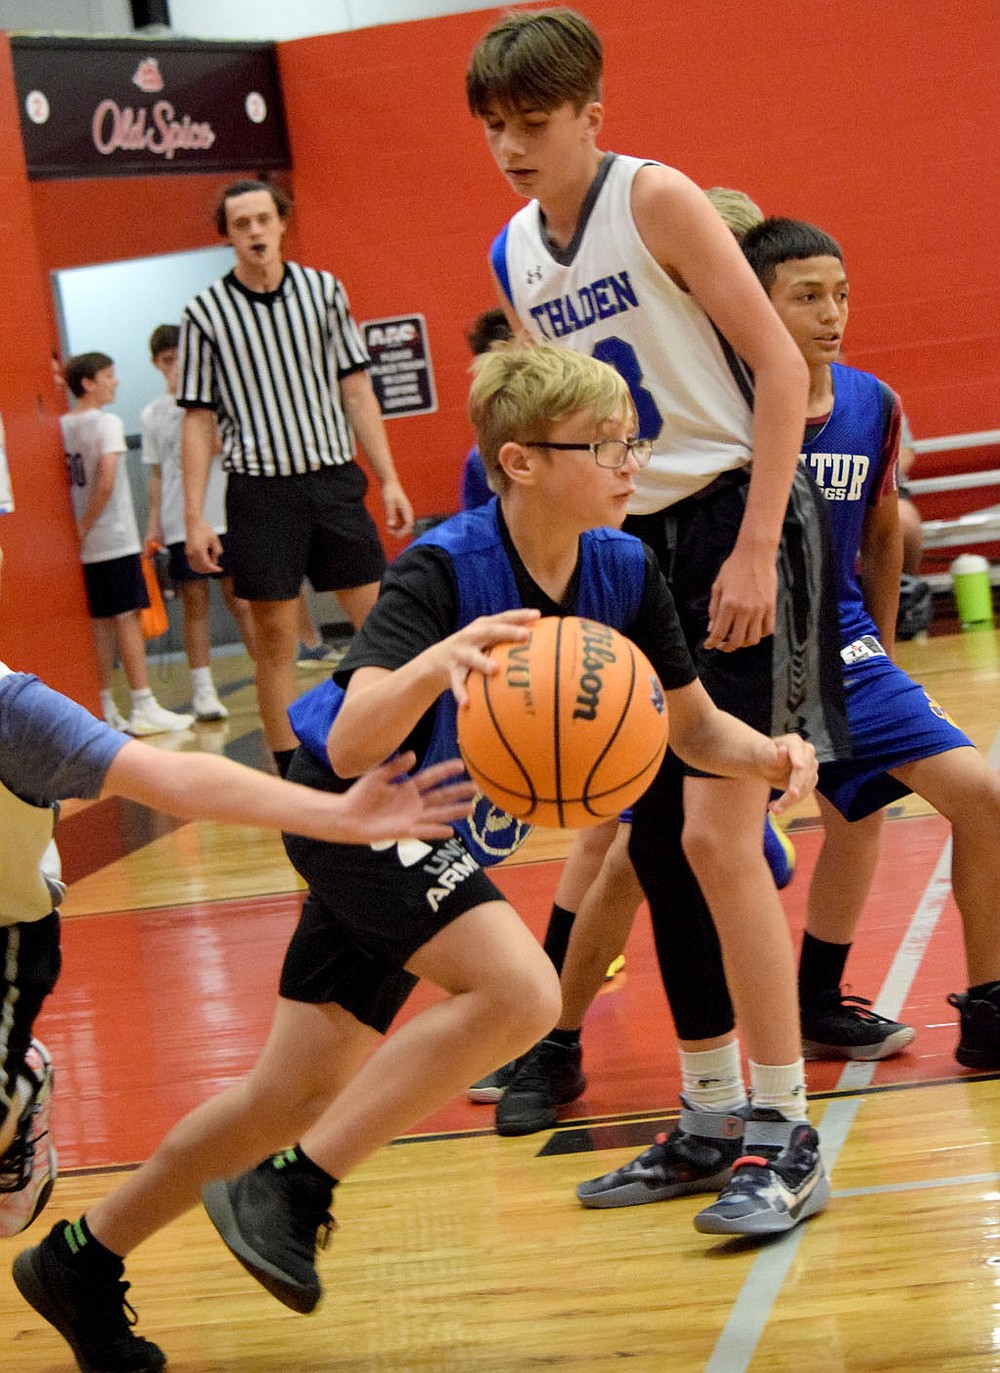 Westside Eagle Observer/MIKE ECKELS After pulling down a rebound, Devin Pembleton (center) drives toward the Bulldog net during the Decatur-Thaden junior high basketball contest on court number 2 at the Arkansas Athletics Outreach team camp in Fayetteville June 8. The junior high team took the 22 minute contest 21-17.